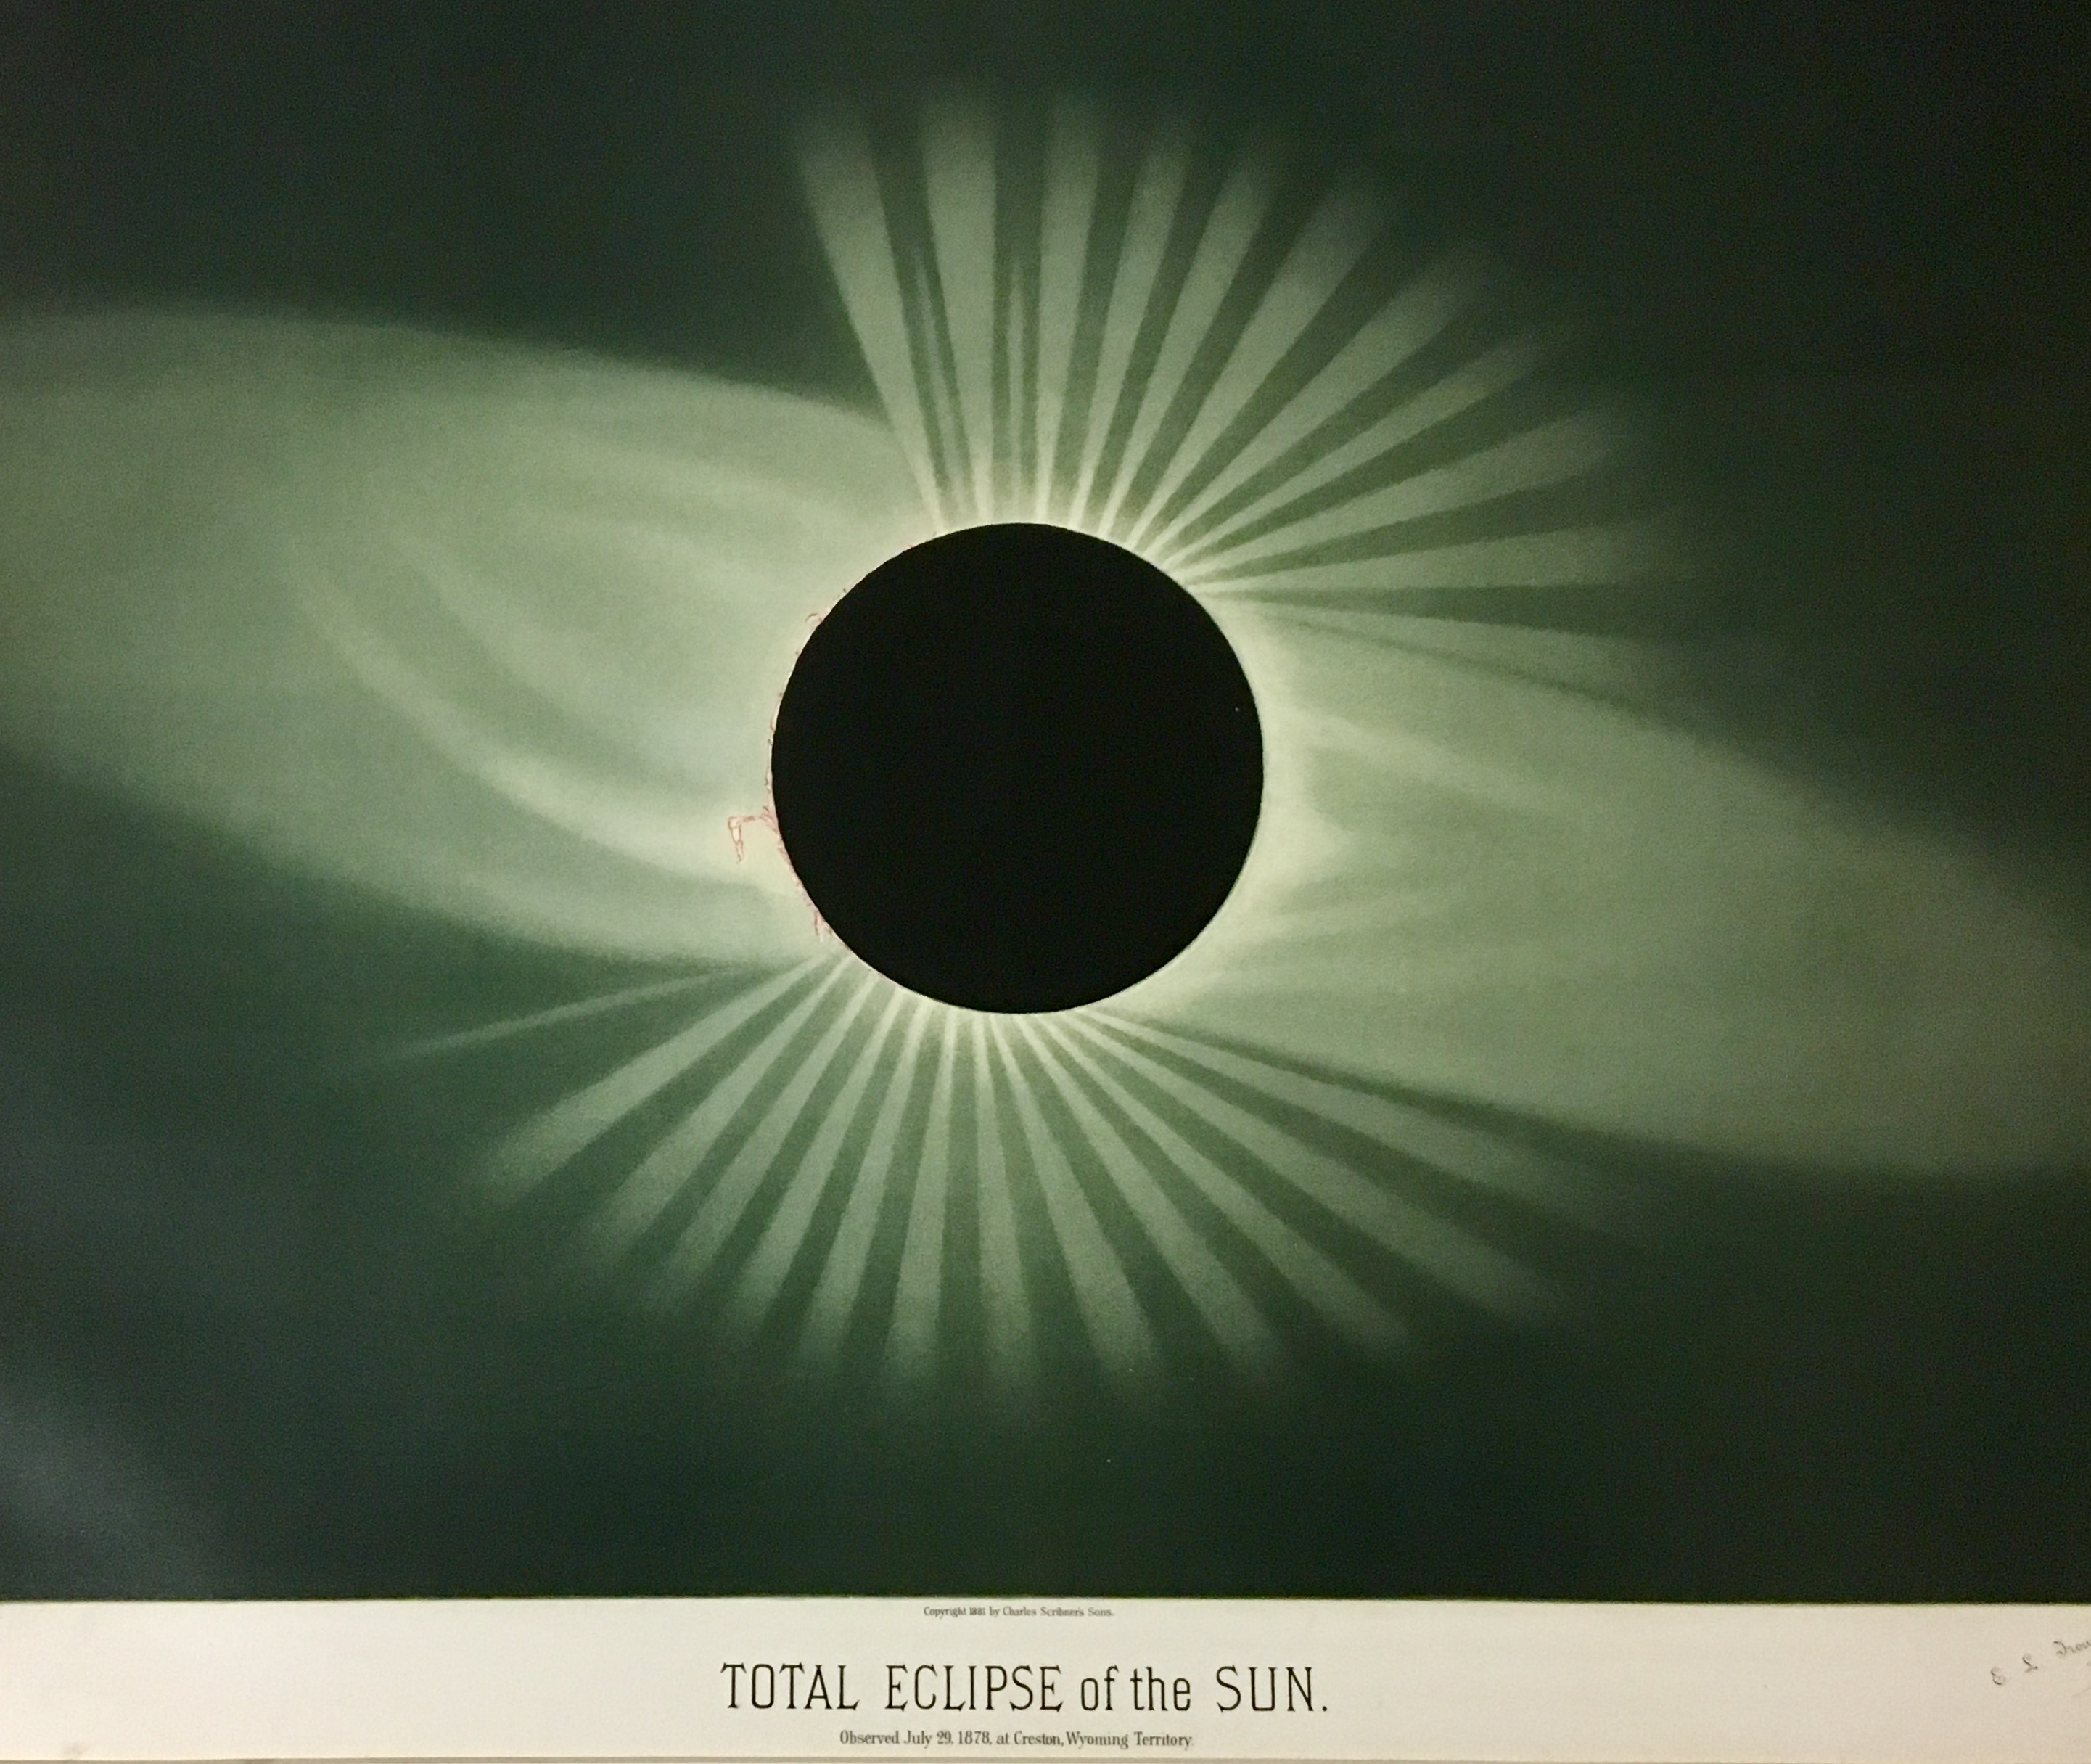 Total Eclipse of the Sun July 29, 1878. Chromolithograph, EL Trouvelot.